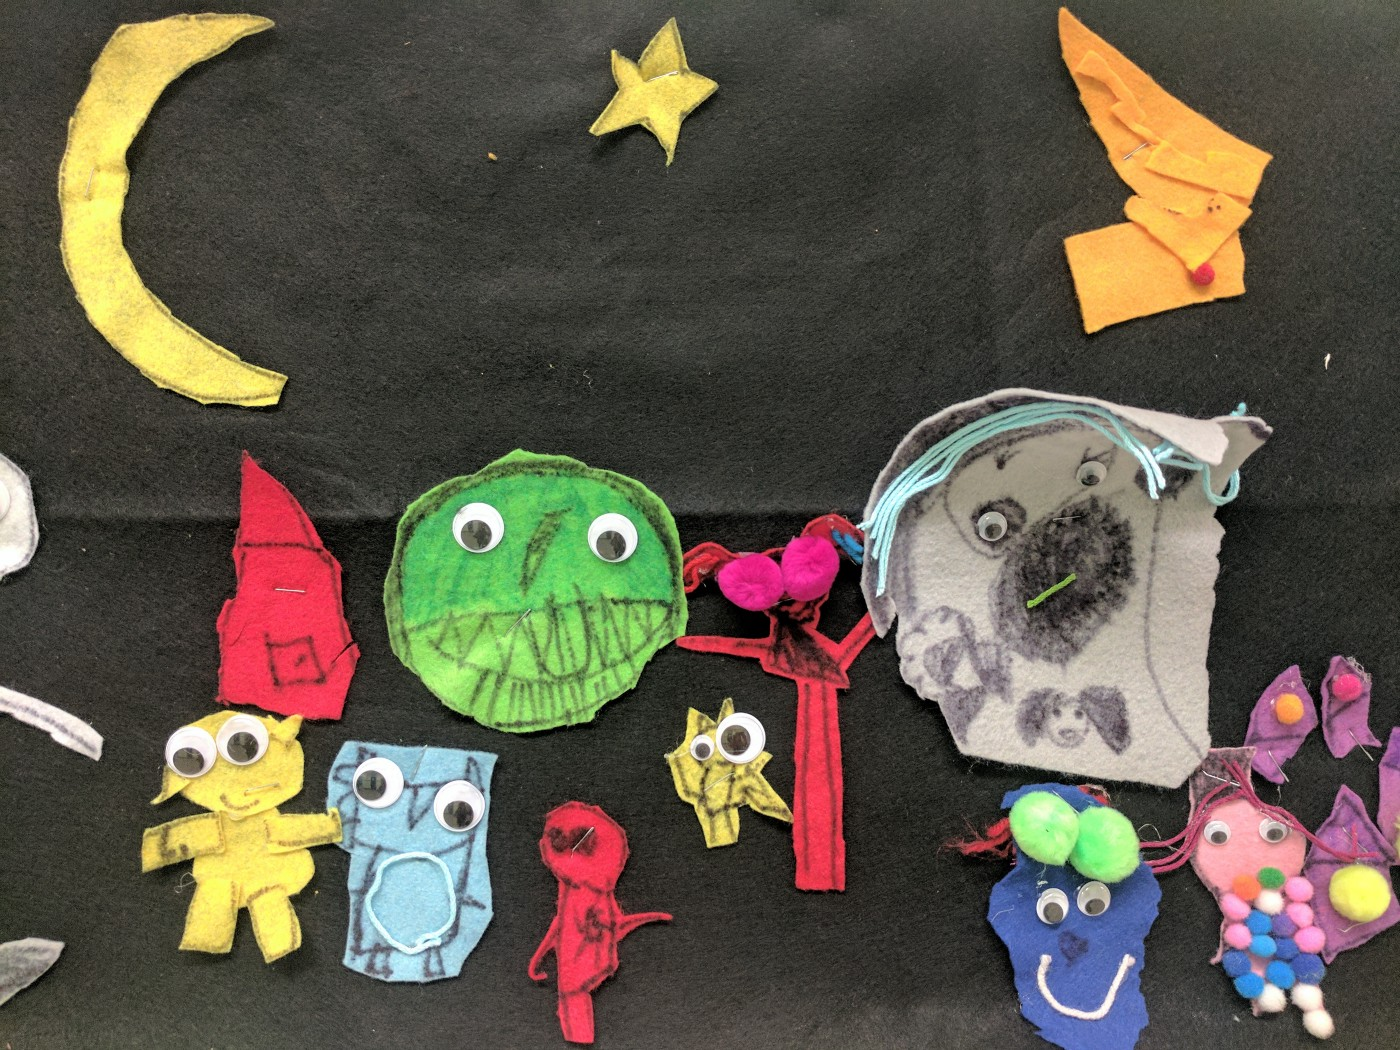 A child's felt storyboard with various characters made of felt with googly eyes glued on.